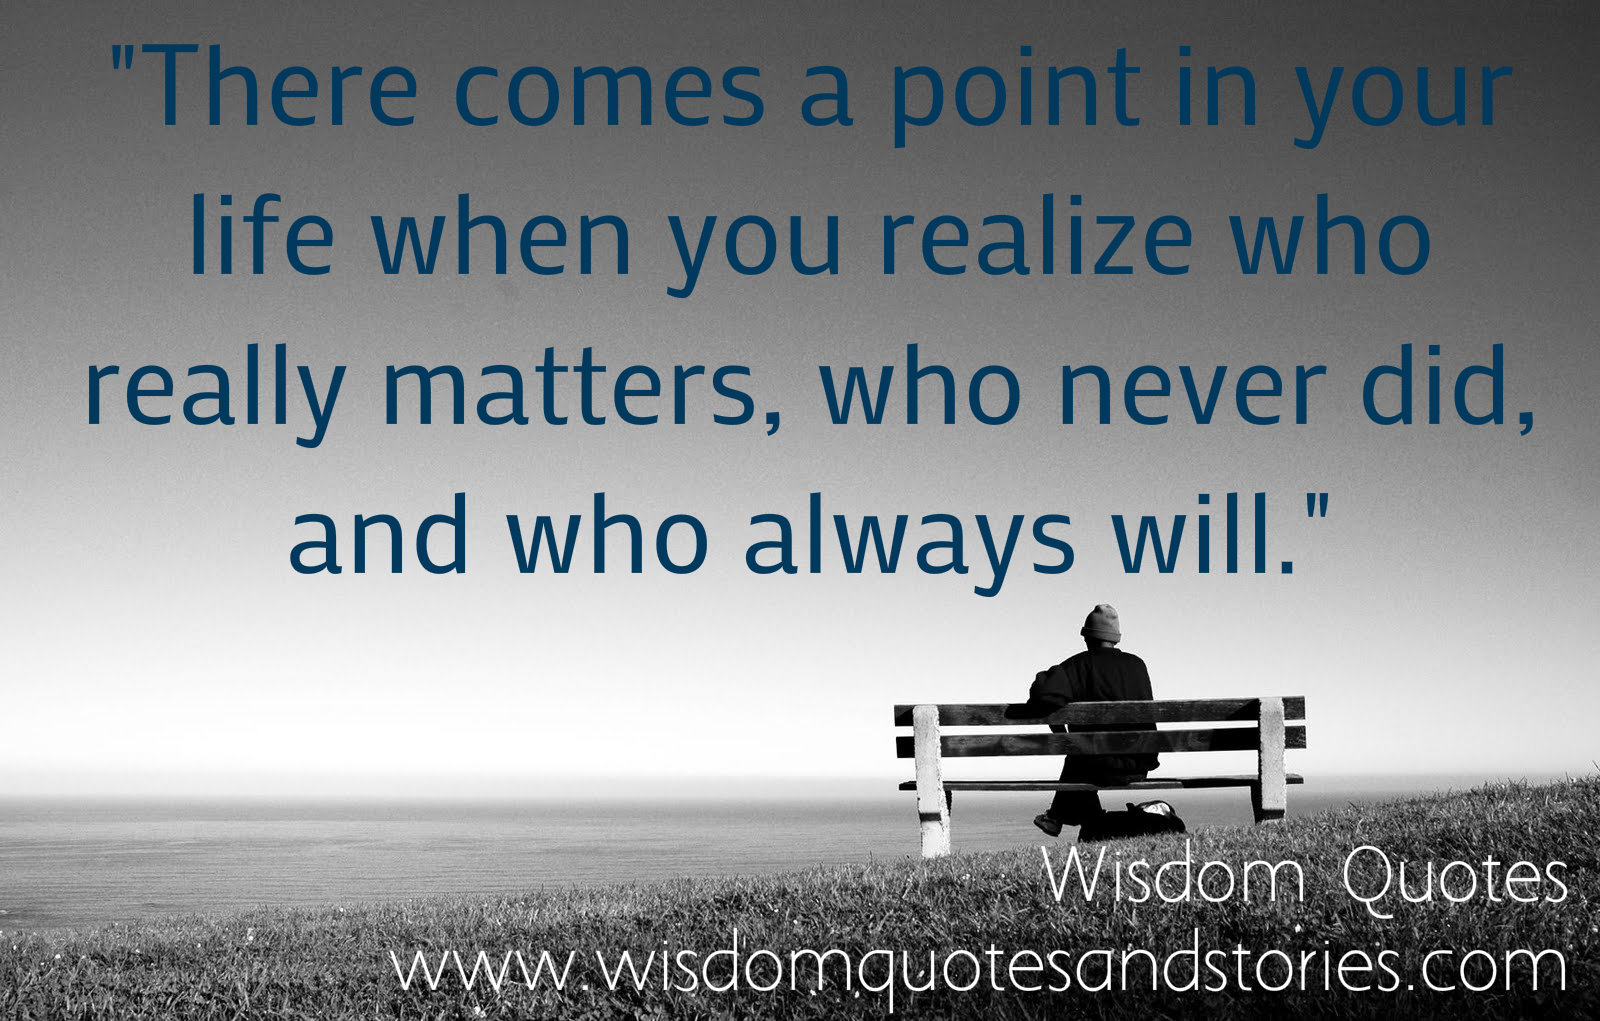 What Really Matters In Life Quotes Pleasing When You Realize Who Really Matters  Wisdom Quotes & Stories